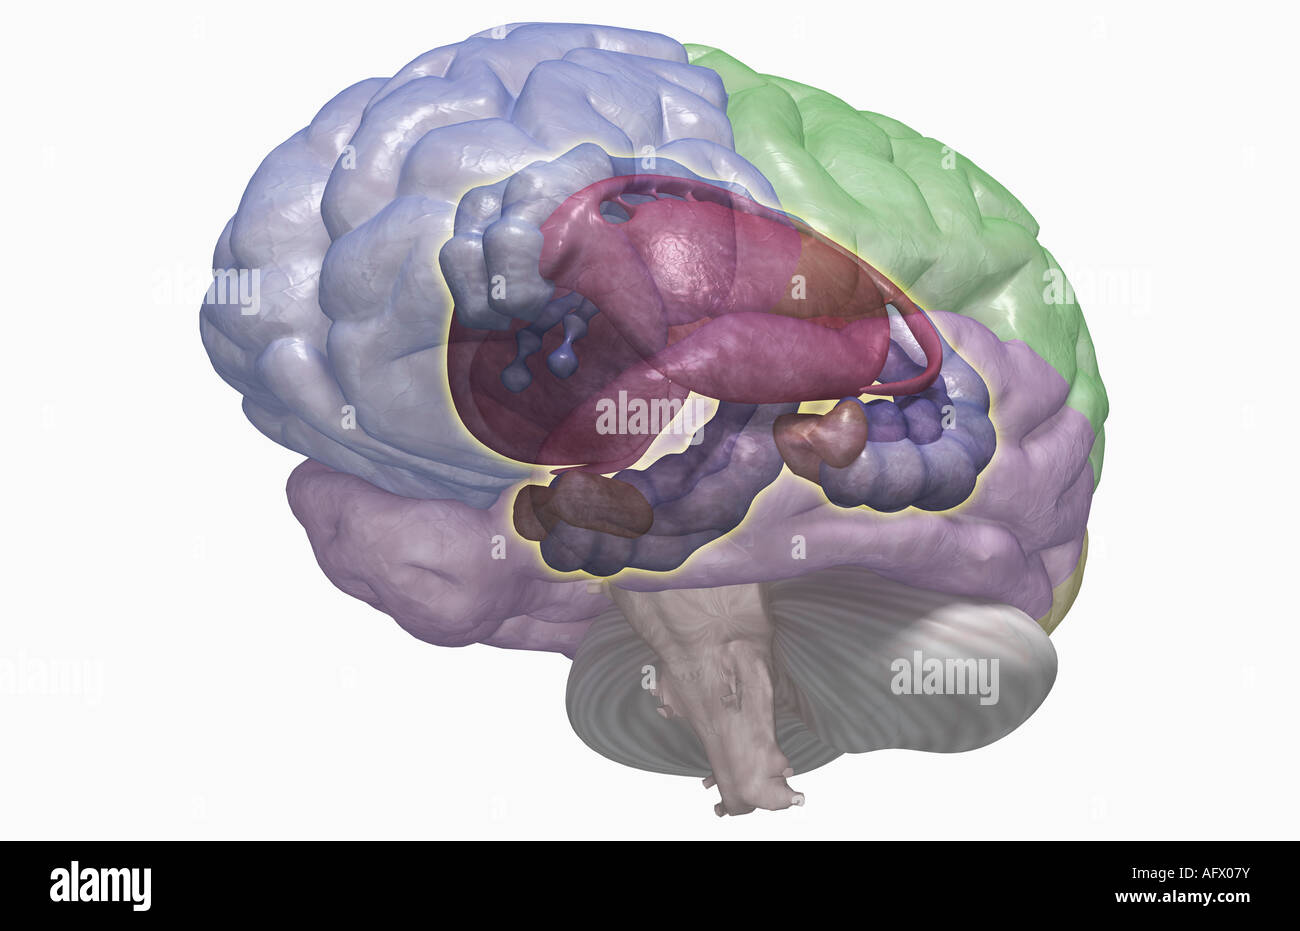 Limbic System Stock Photos & Limbic System Stock Images - Alamy